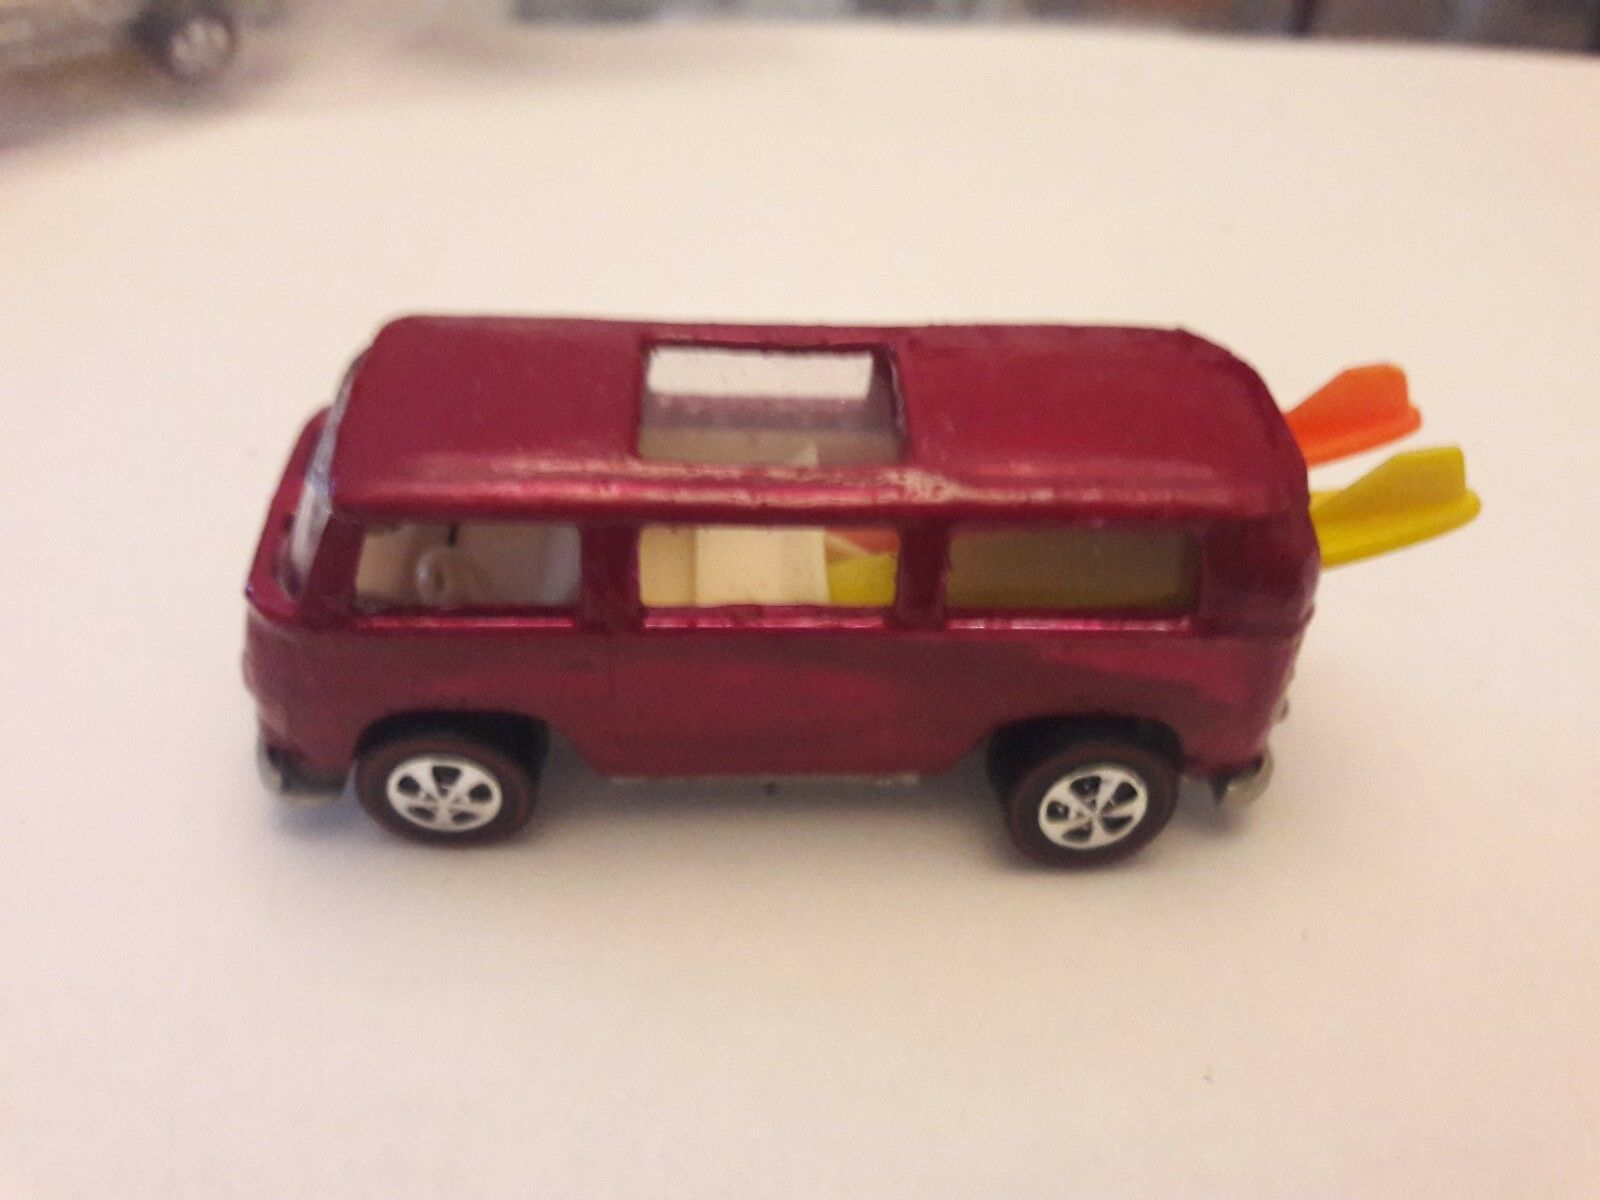 rotline hot wheels vitage mattel beach bomb 1969 sammlung